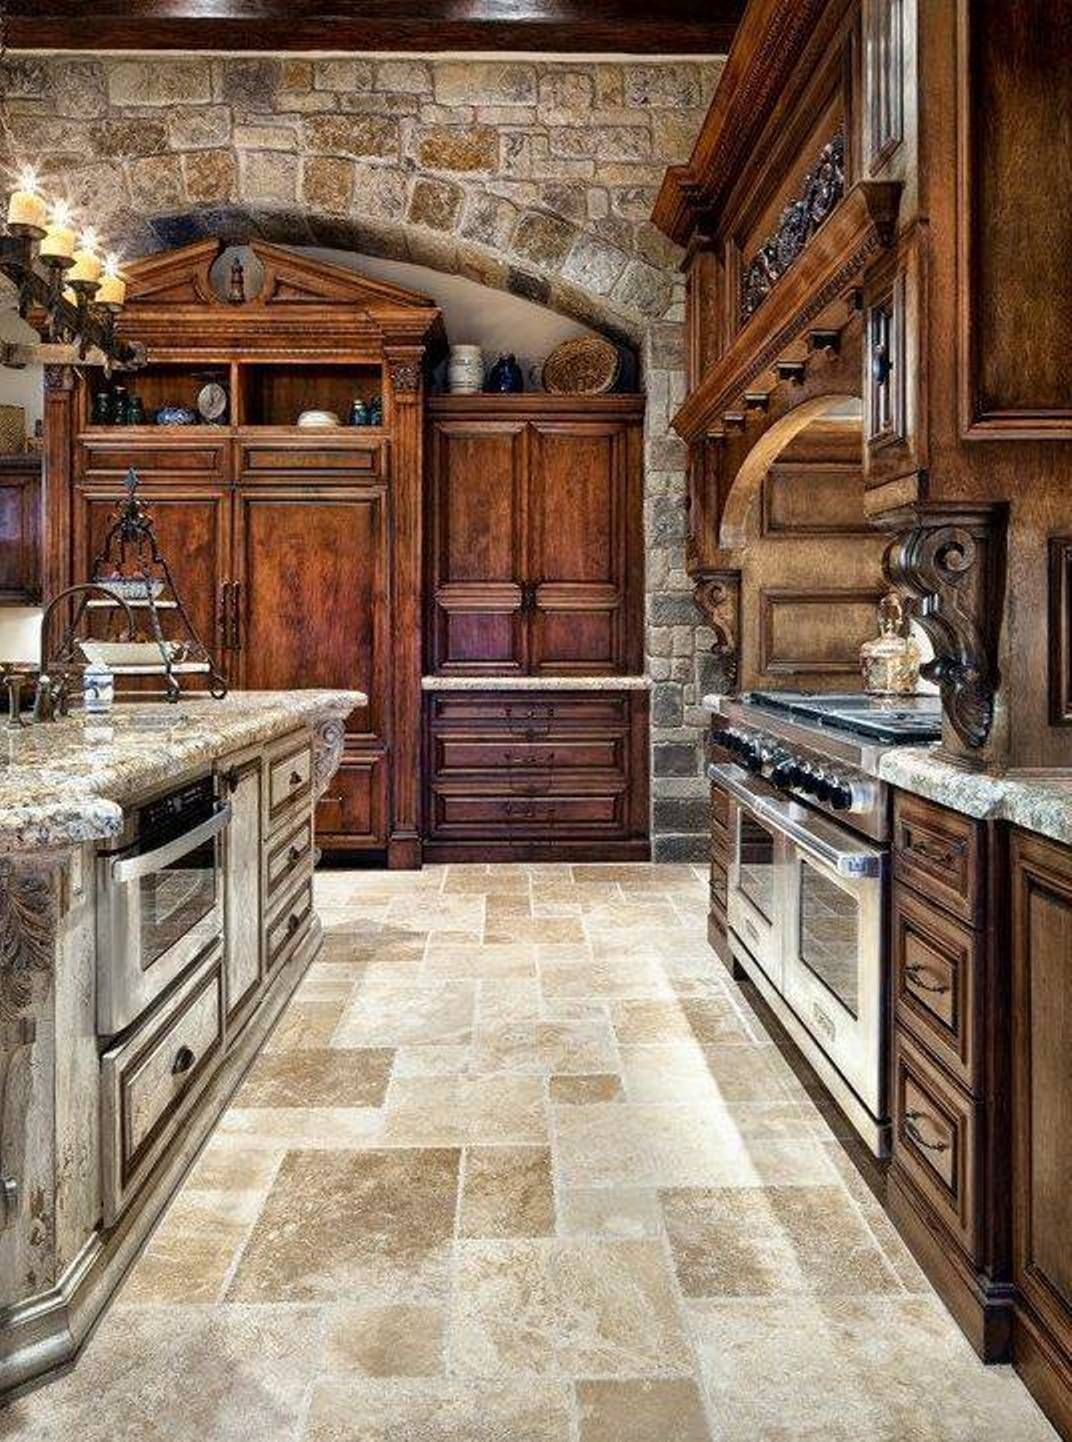 Old world looking kitchens old world tuscan themed kitchen style with arched brick wall Old world tuscan kitchen designs